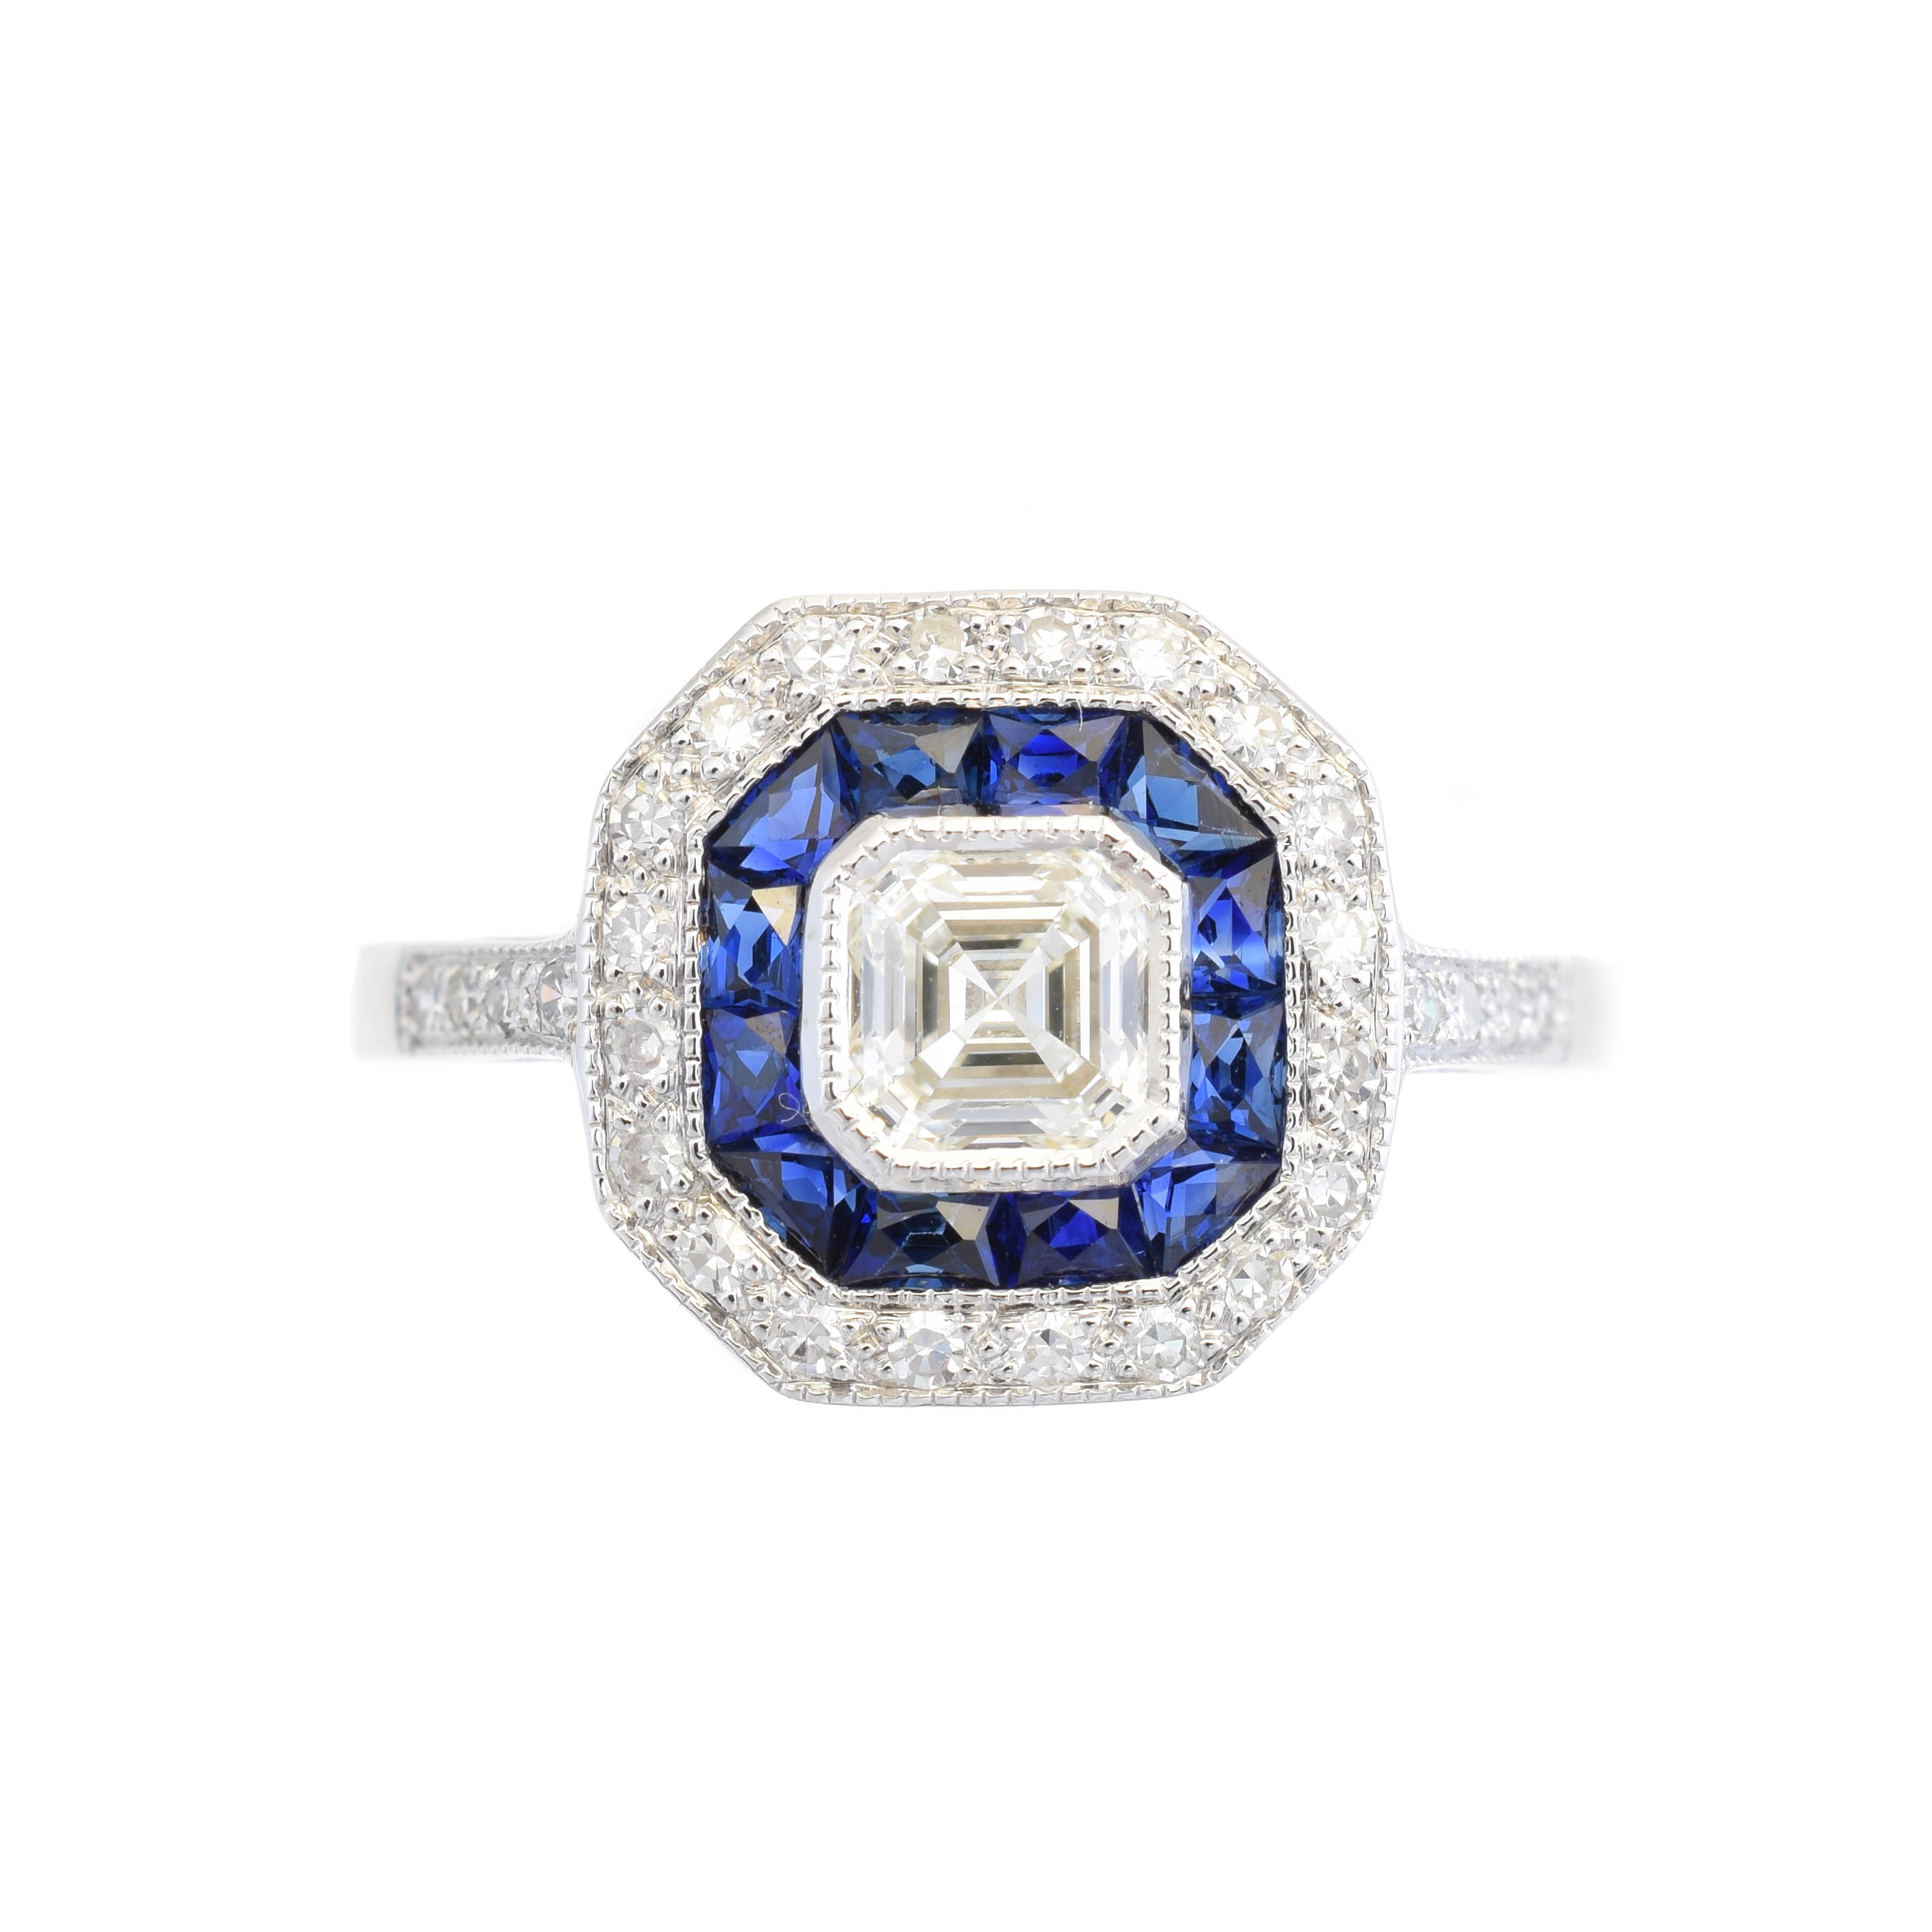 A diamond and sapphire cluster ring, the Asscher cut diamond within a calibré cut sapphire and single cut diamond surround, to the similarly cut diamond shoulders, estimated total diamond weight 0.65ct, principal diamond estimated 0.50ct, estimated colour J-K, estimated clarity VS, stamped 750, ring size N1/2, gross weight 3g.